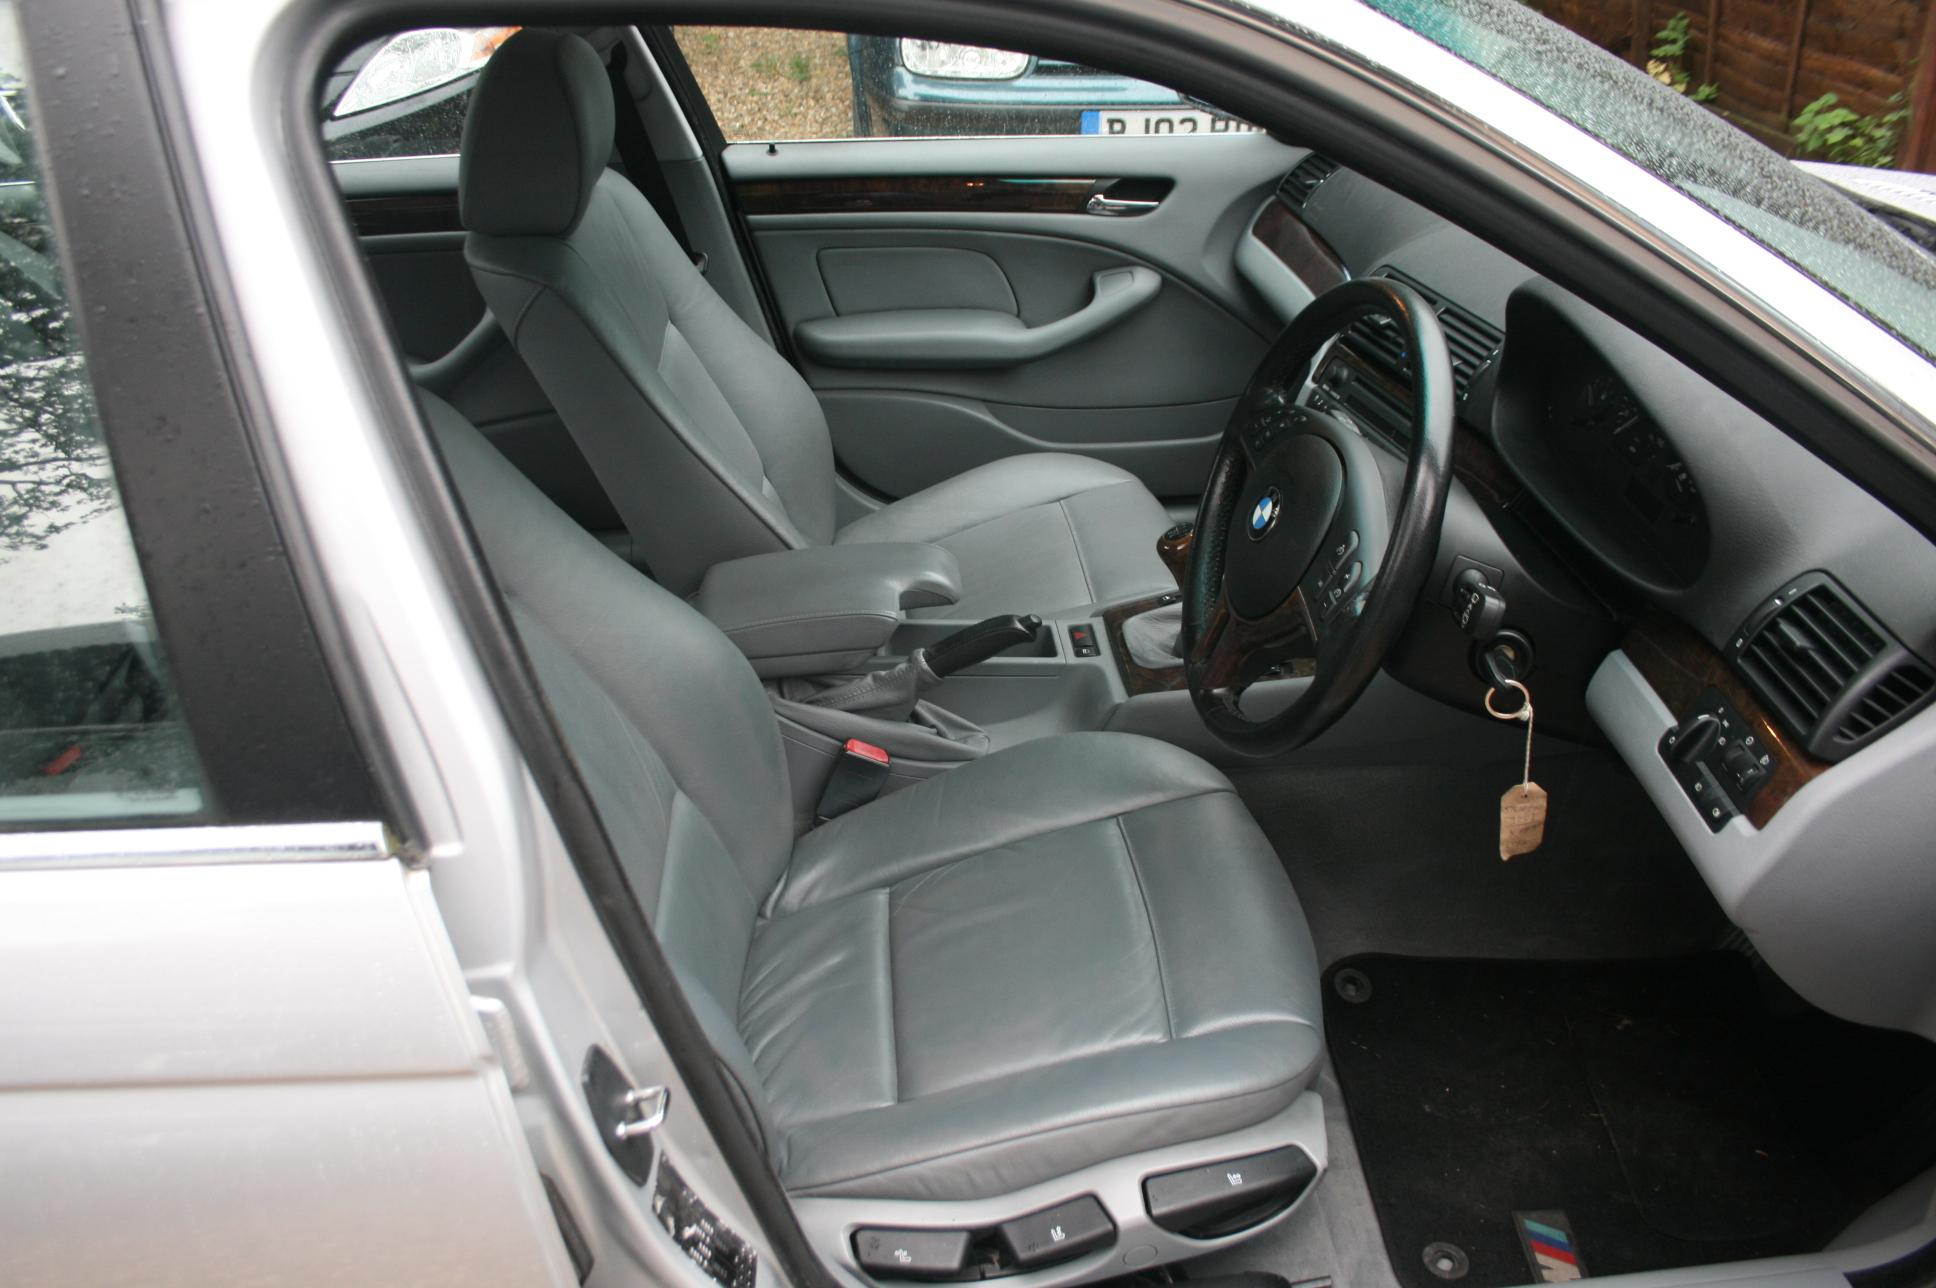 BMW 325i SE 4 Door Saloon £1999